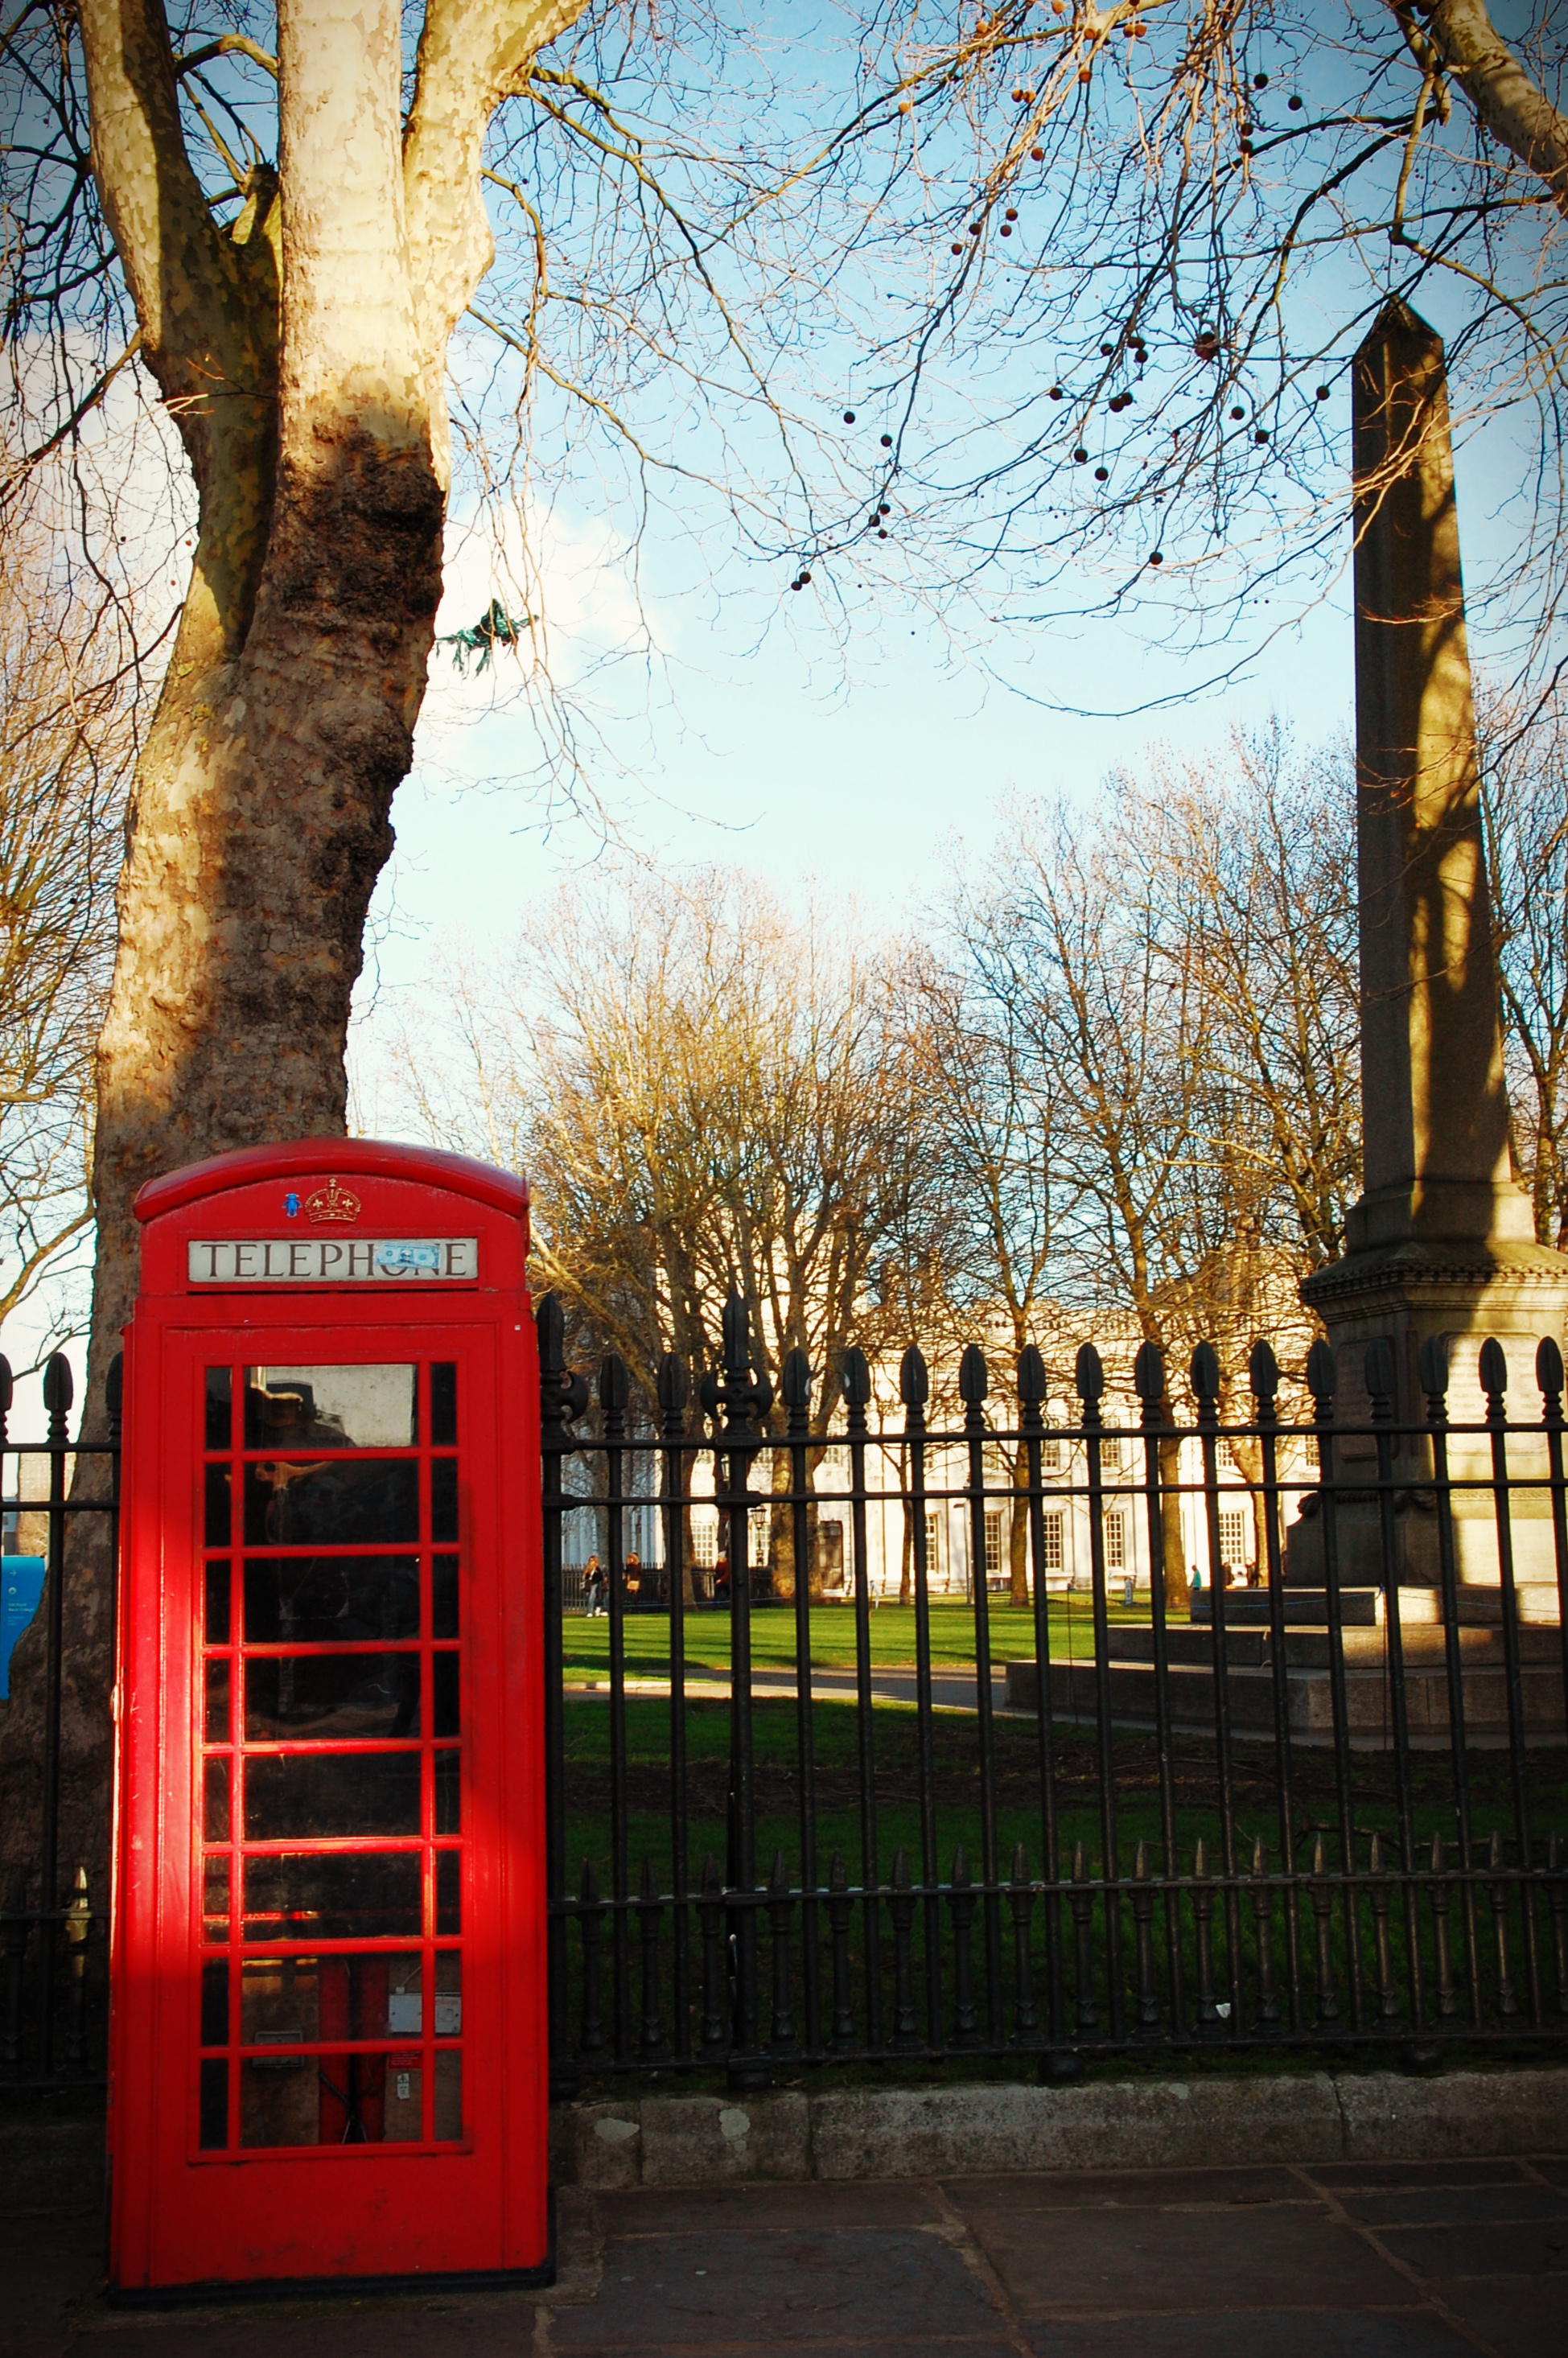 phone booth at the Old Naval College Greenwich